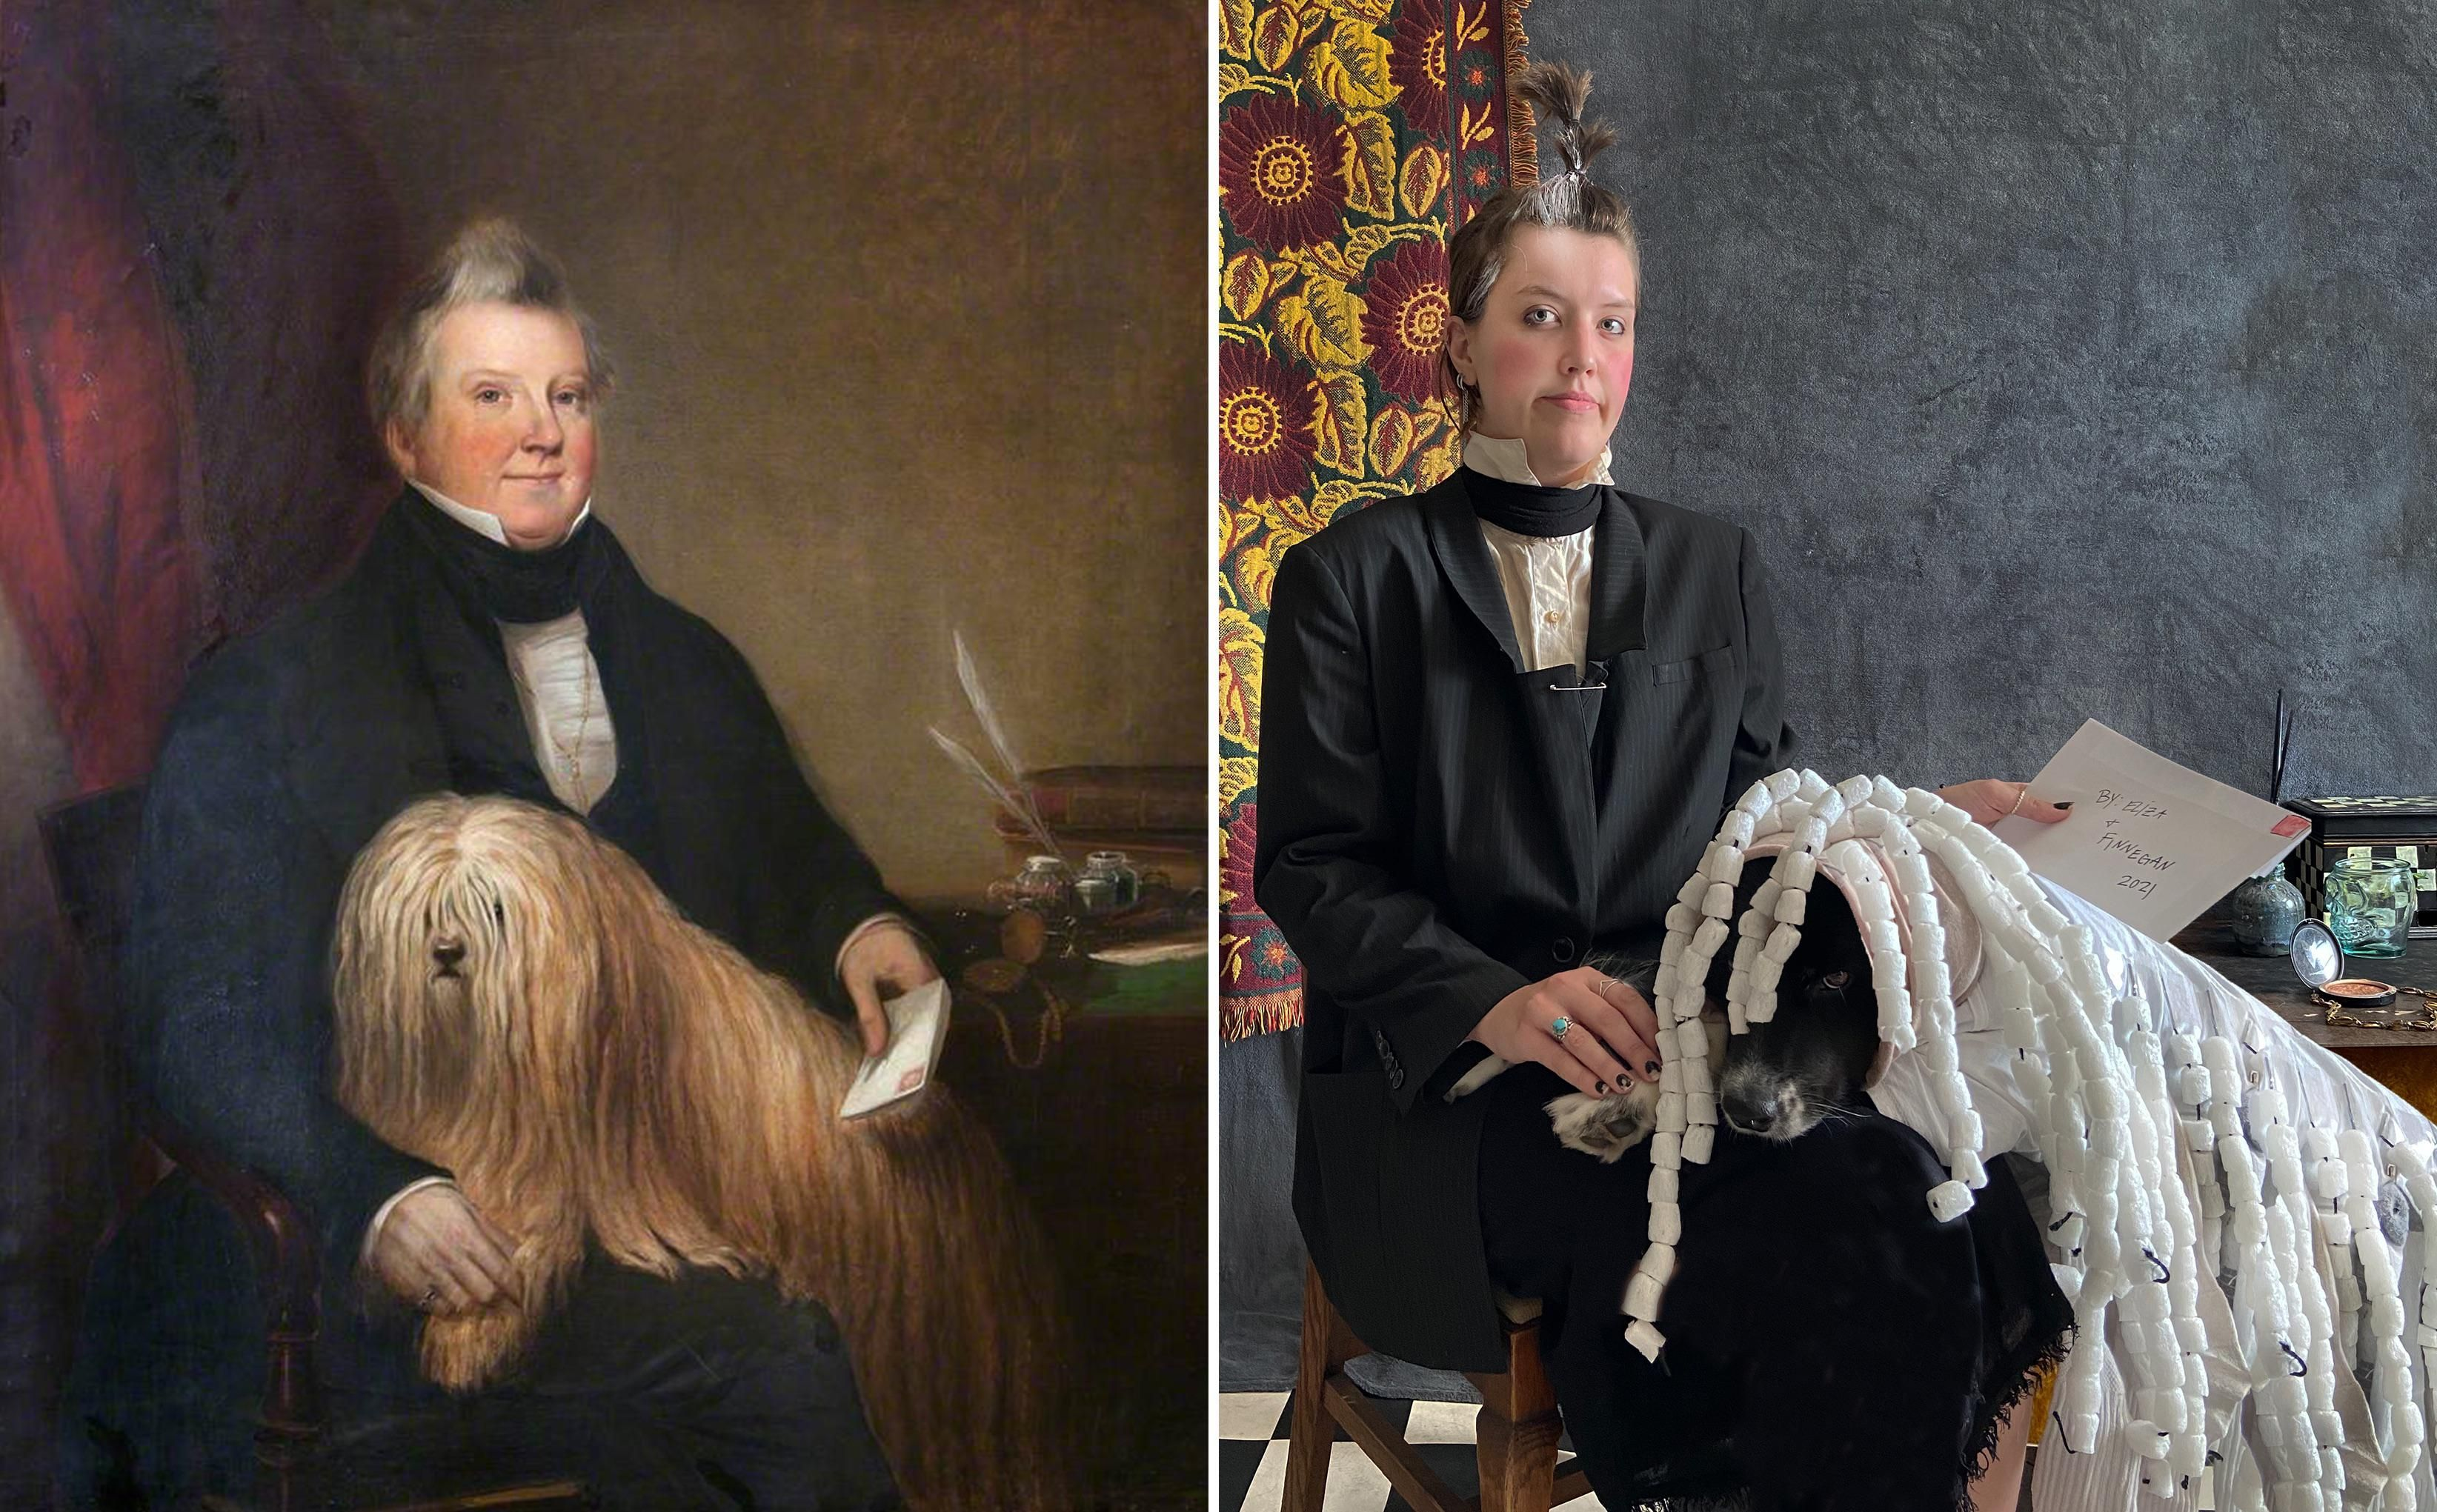 This is Finn, the Australian Shepherd & we recreate famous artworks together every day! Enjoy!